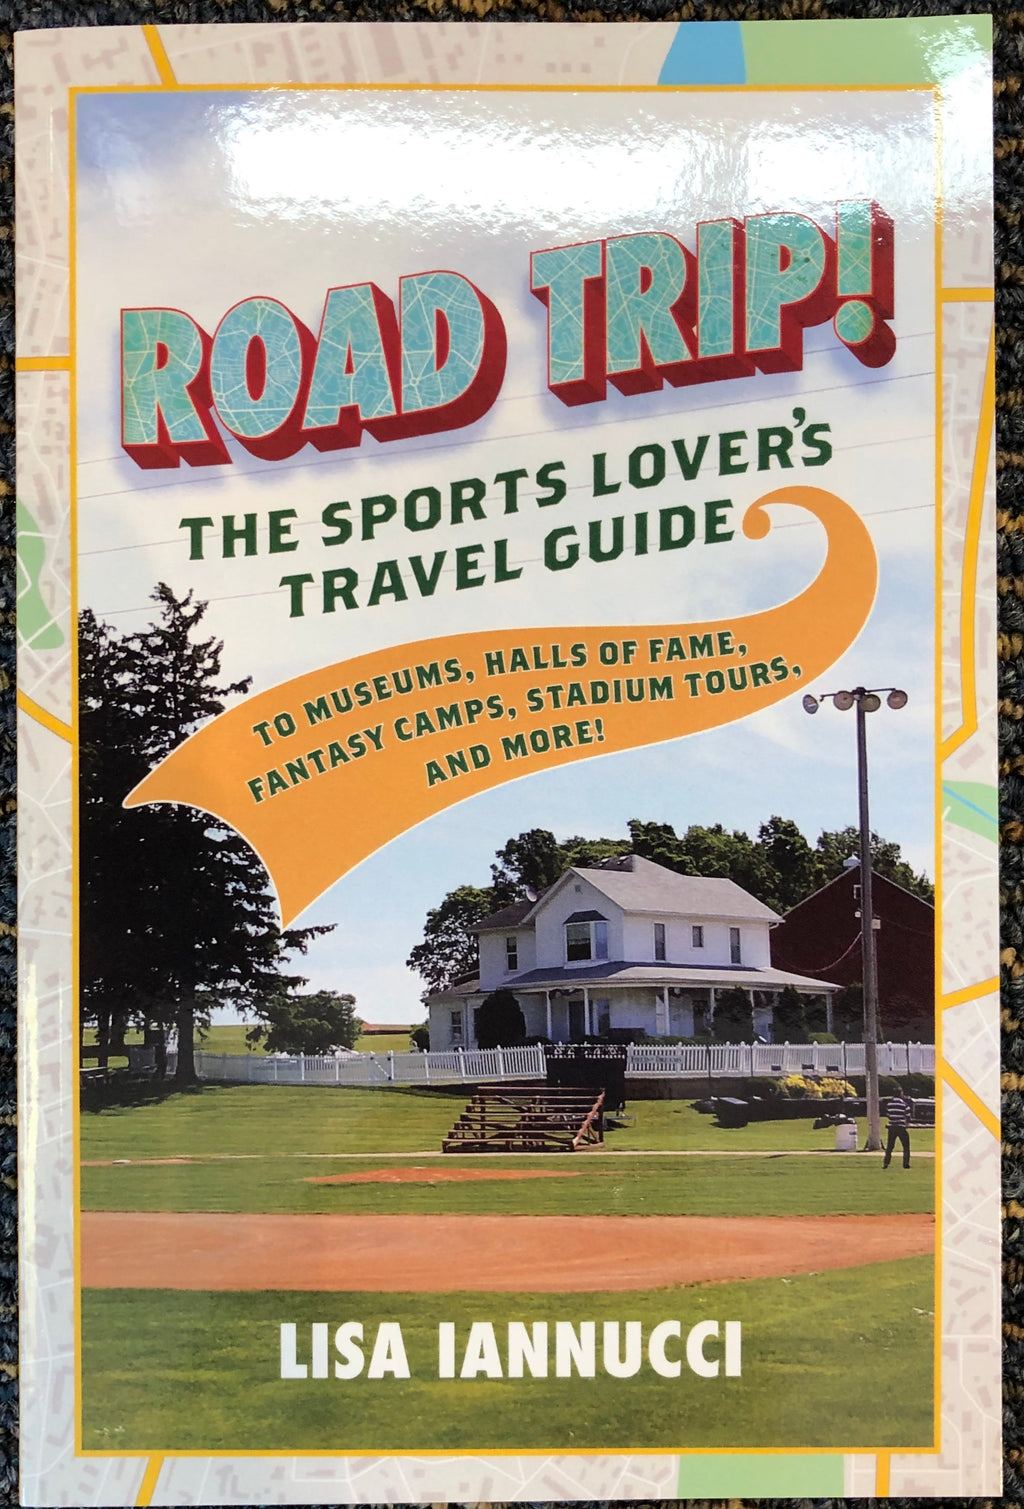 Road Trip! The sports lovers travel guide